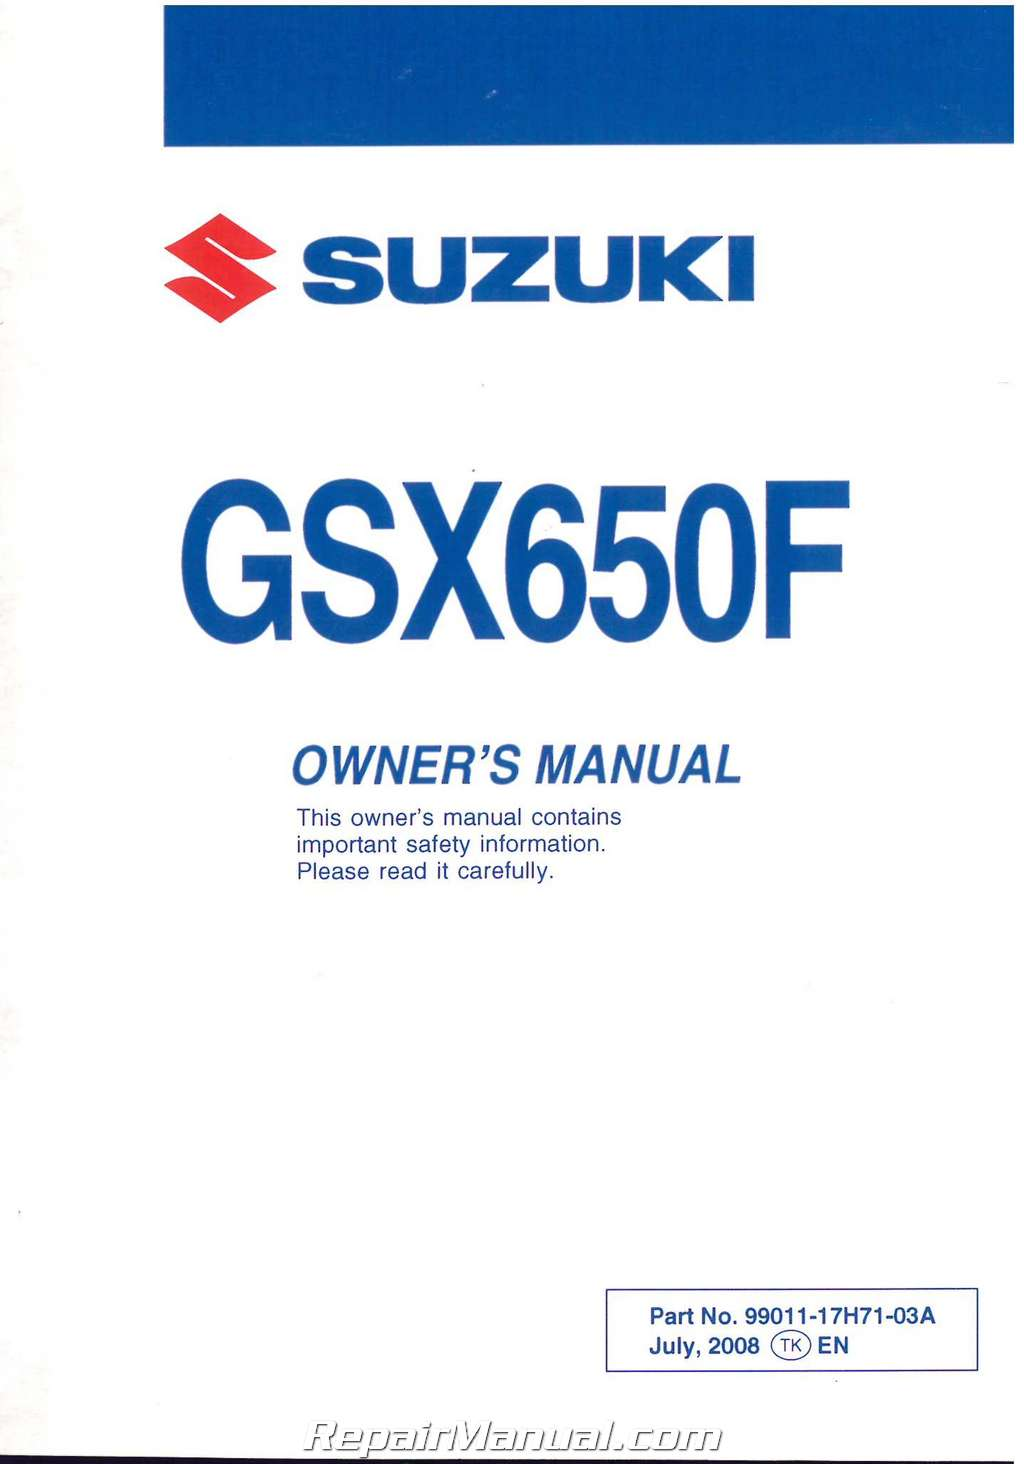 2009 suzuki gsx650f motorcycle owners manual rh repairmanual com suzuki owners manuals free download suzuki owners manual lt-a450x